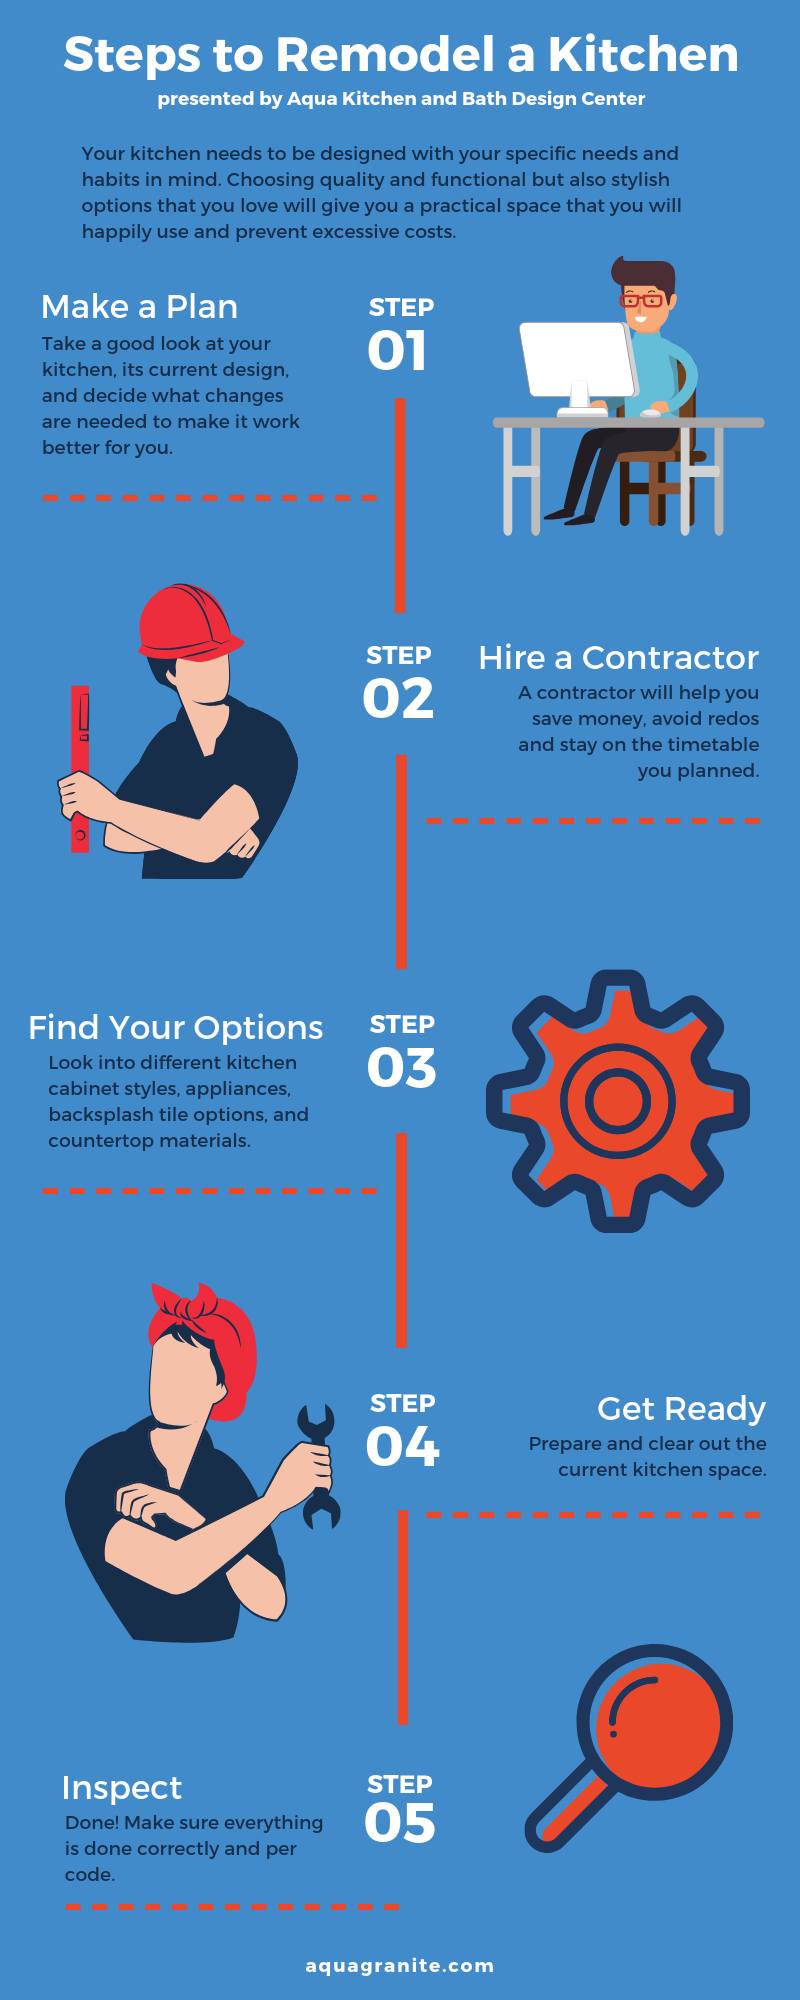 Steps to Remodel a Kitchen INFOGRAPHIC